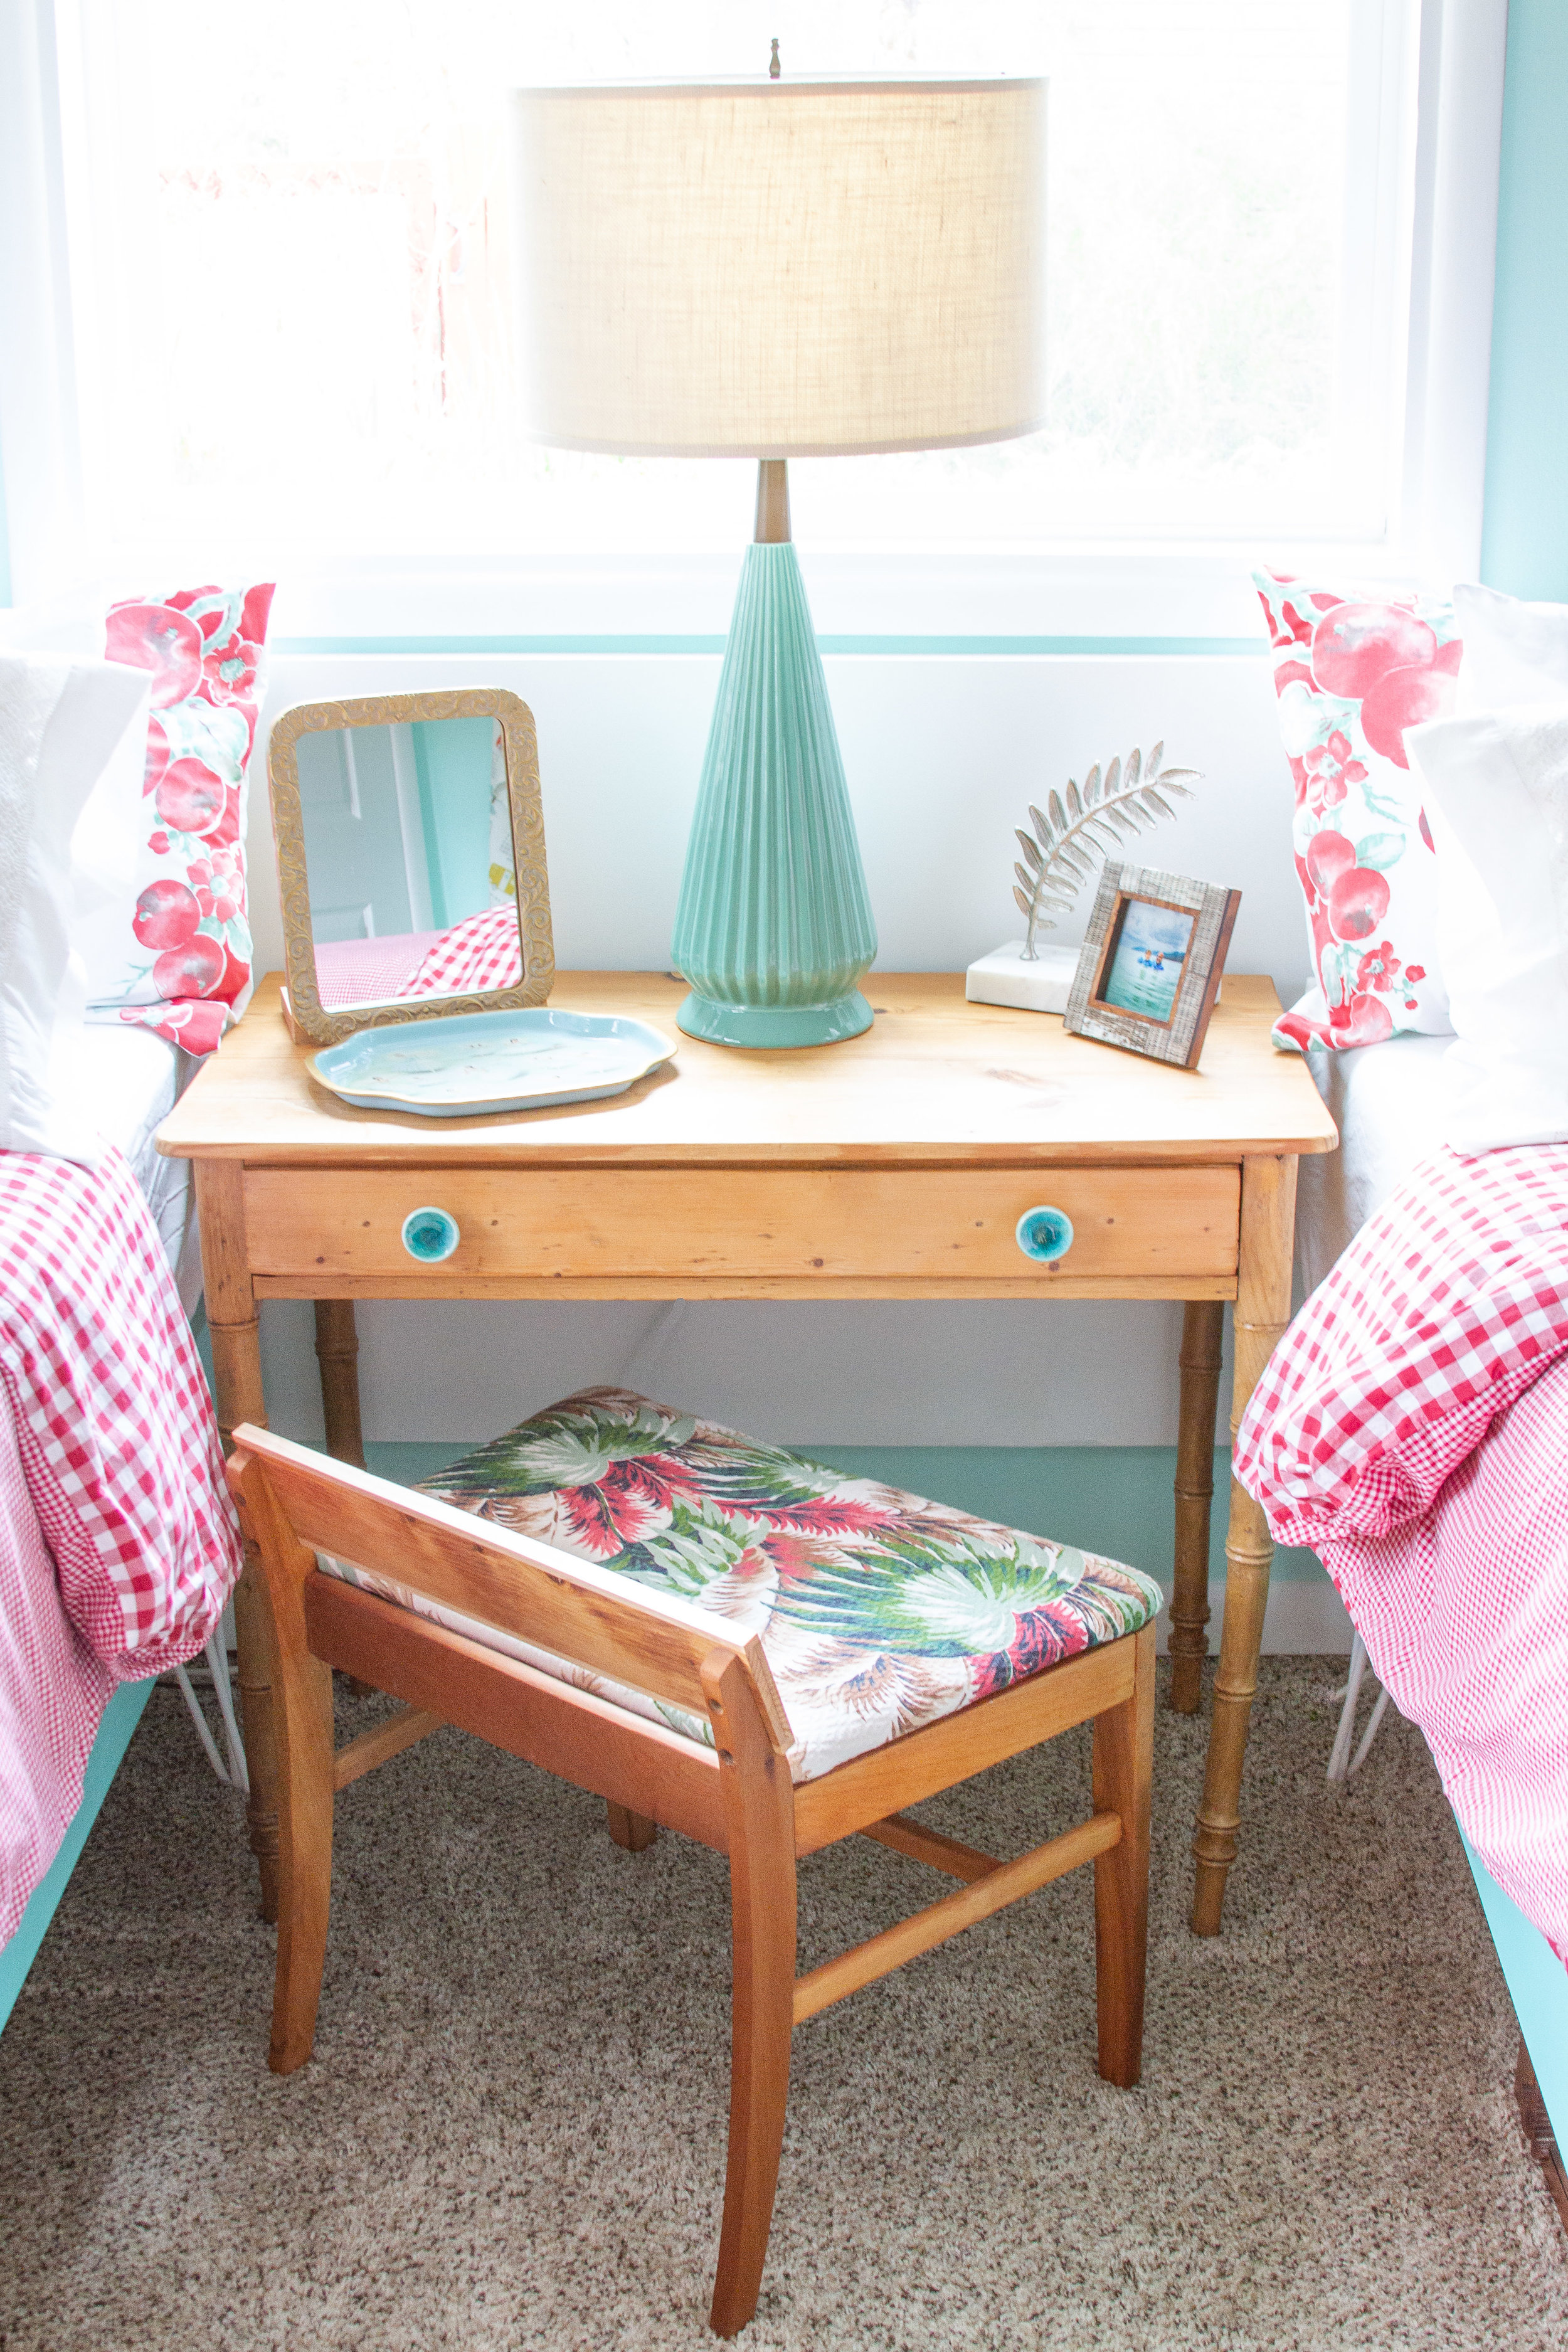 Vintage fabric from the 1950s gives this Mid Century dressing table stool a fresh look.